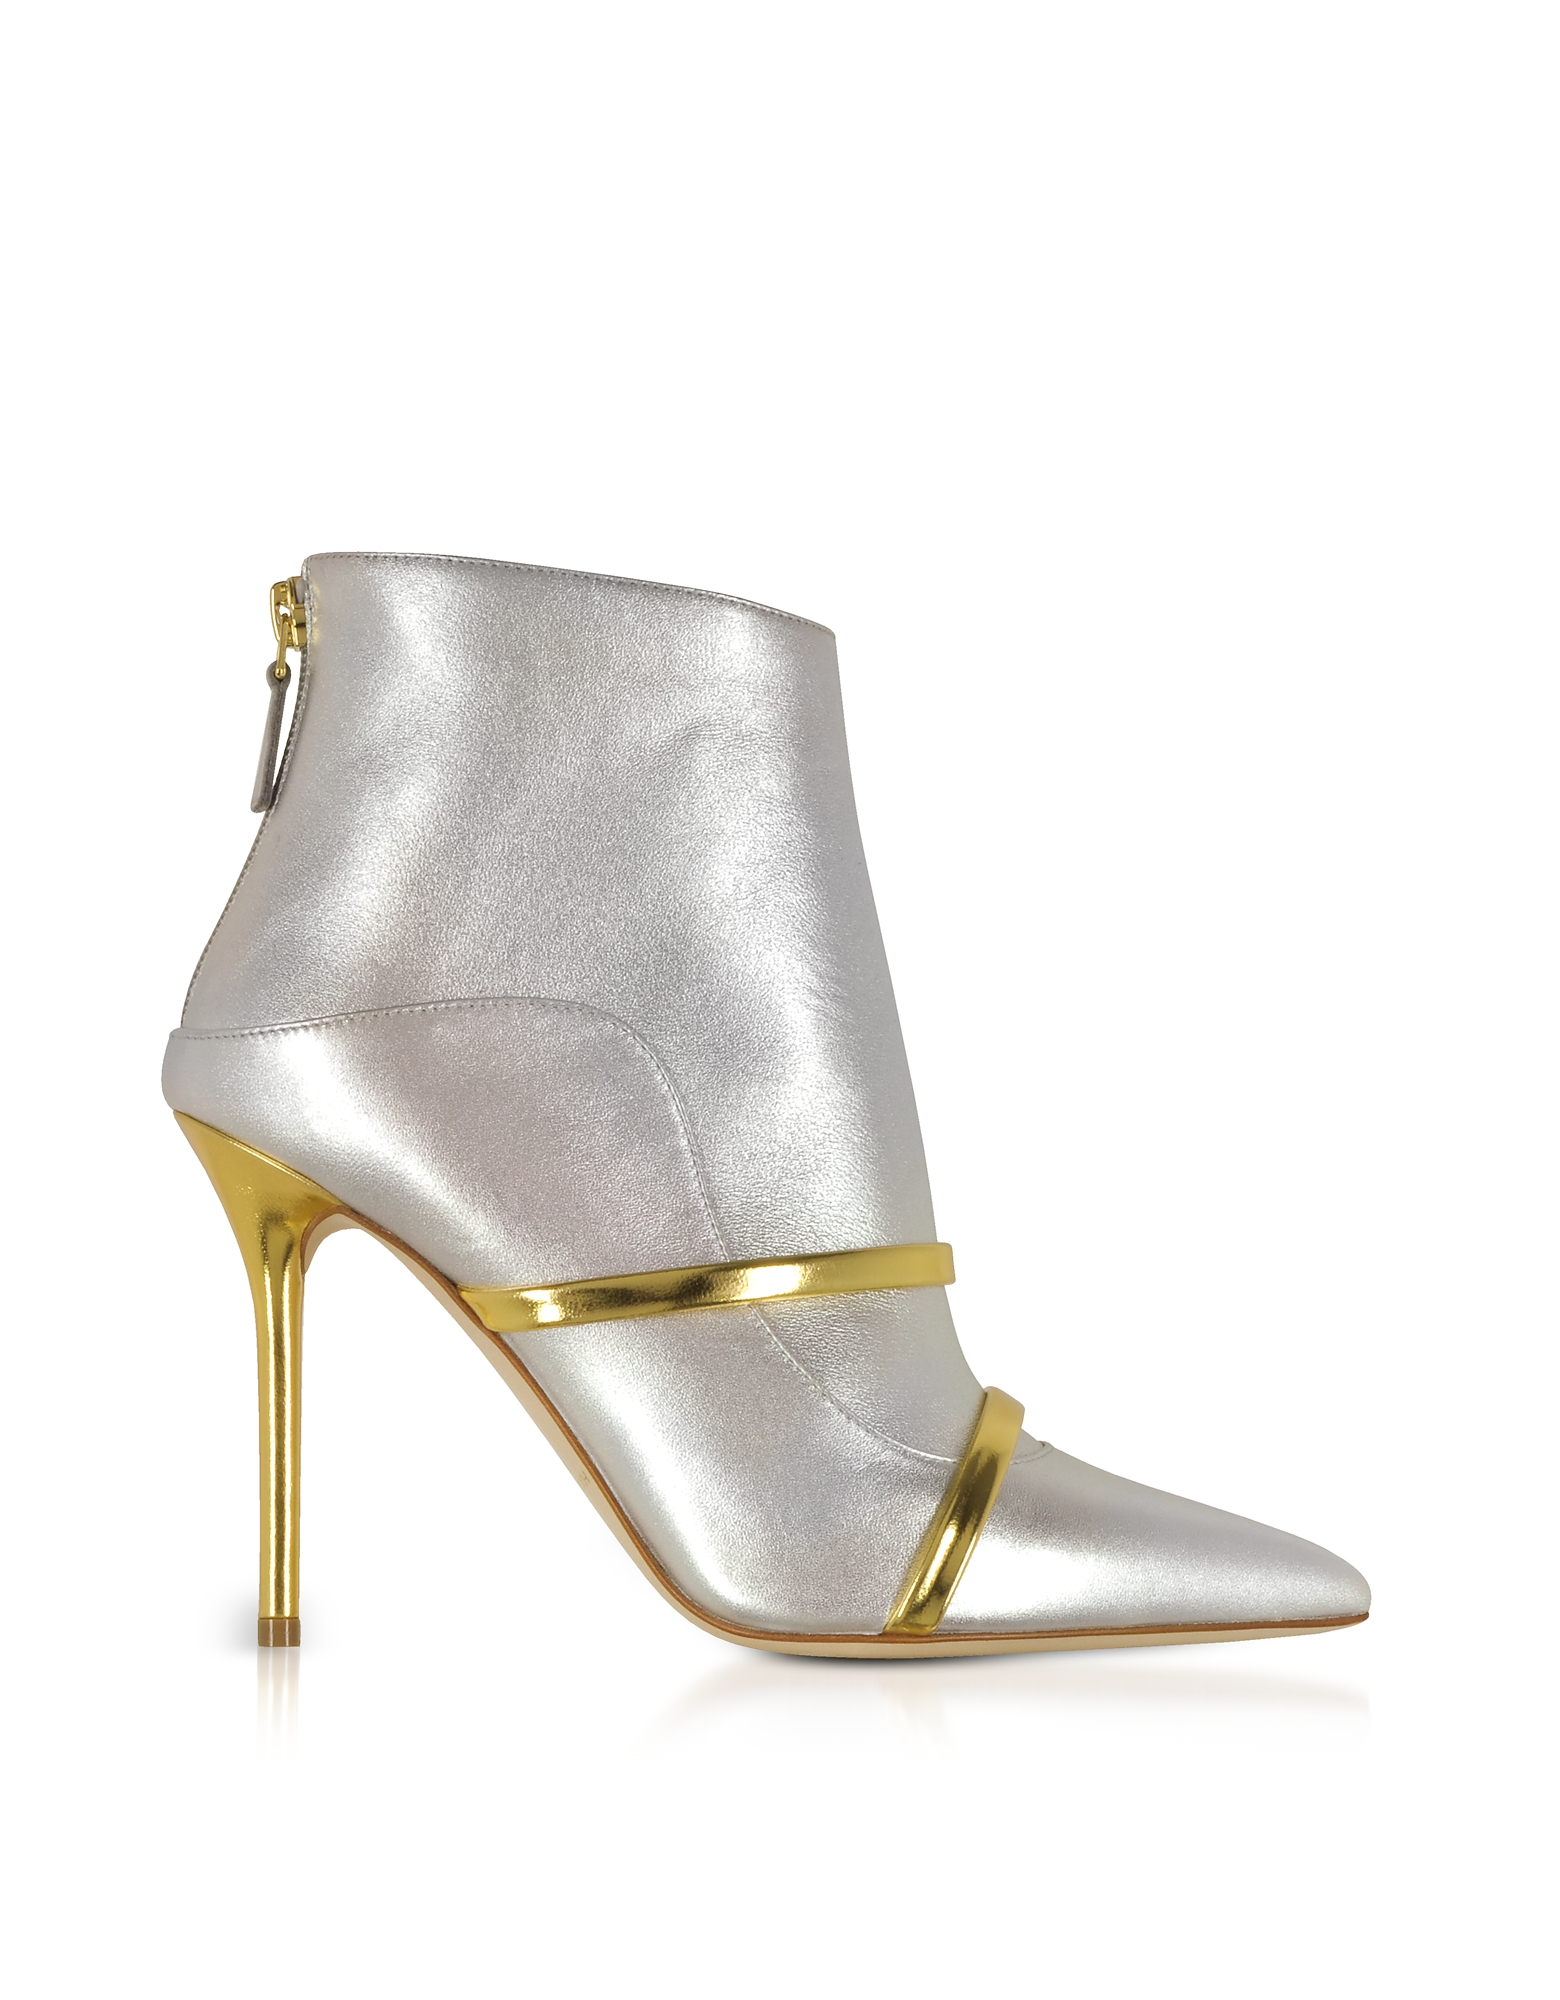 Malone Souliers by Roy Luwolt Shoes, Madison 100 Metallic Nappa Leather Boots